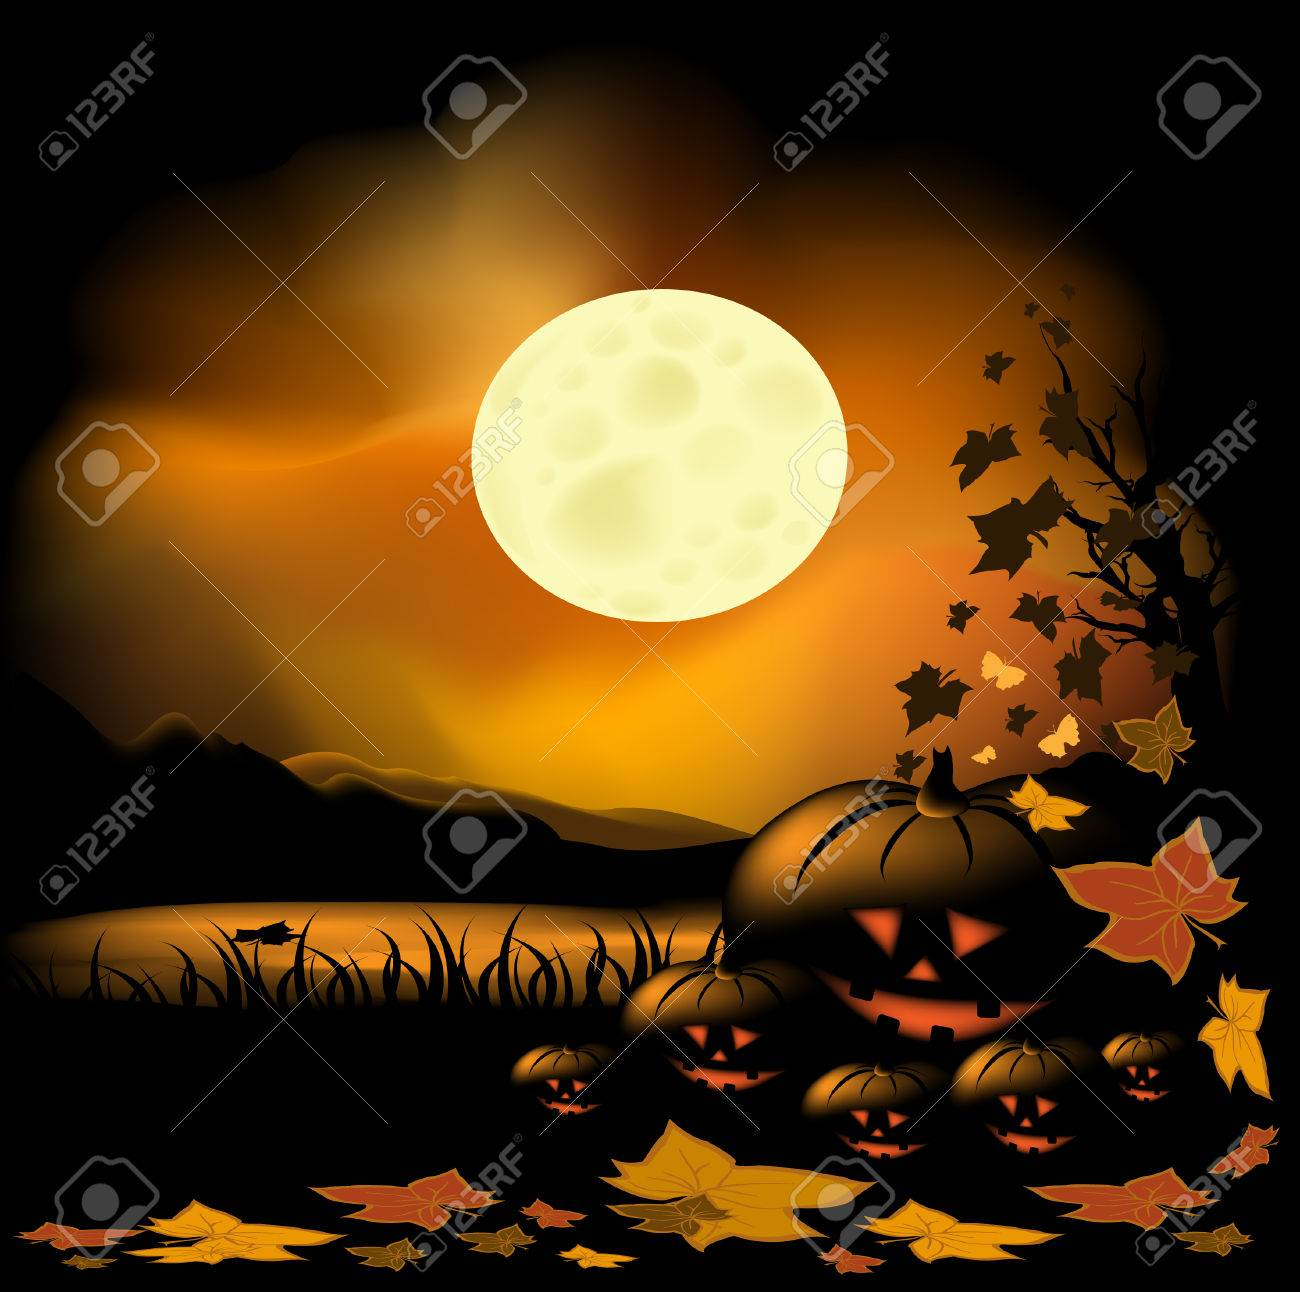 Halloween background with pond, moon and pumpkin - 7678747